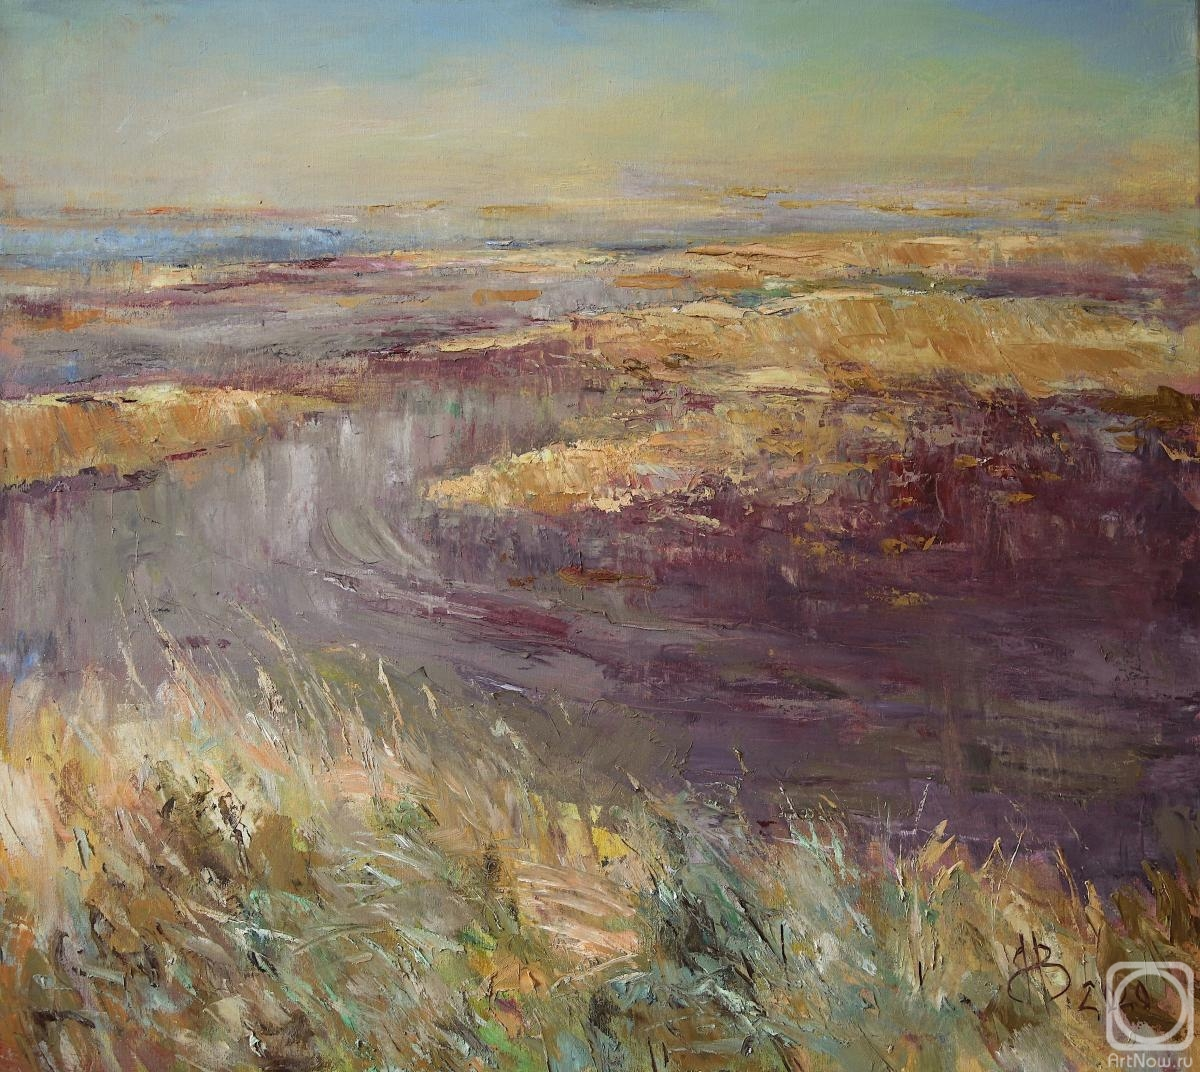 Vyrvich Valentin. Estuaries and steppe